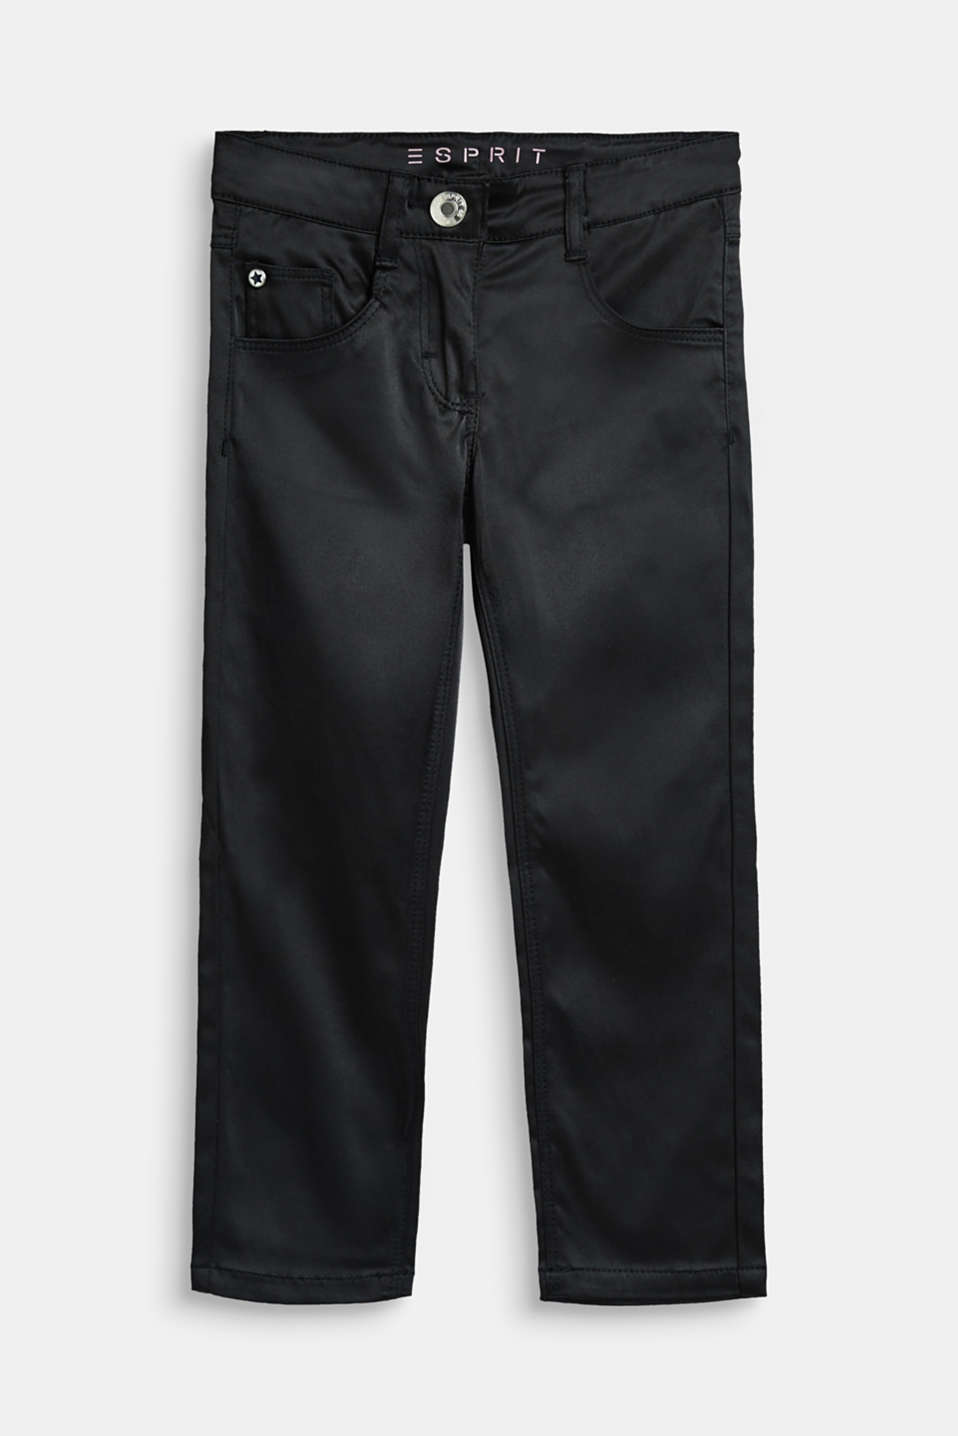 Esprit - Narrowly cut satin trousers